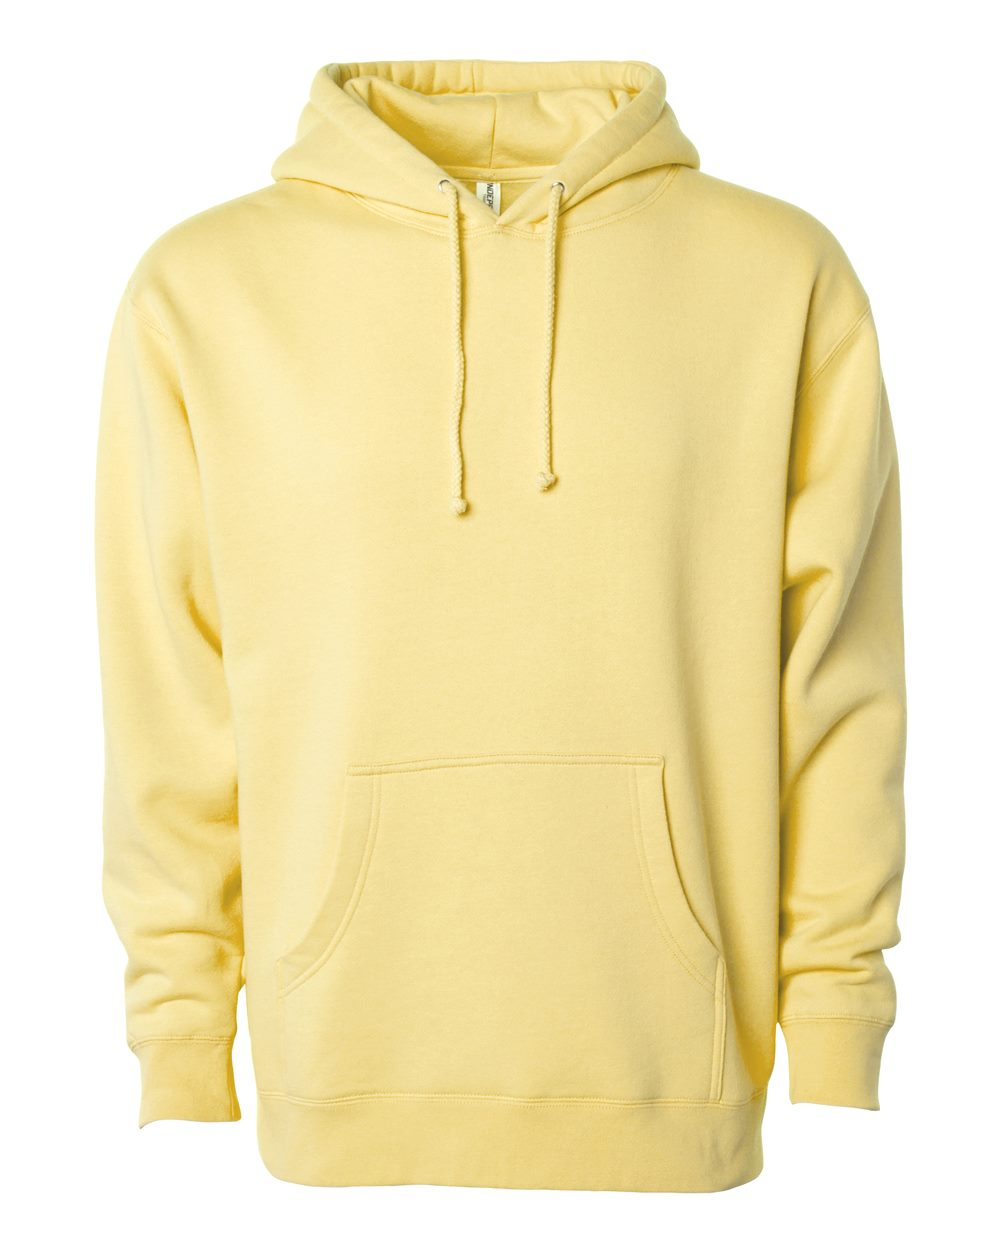 Independent-Trading-Co-Mens-Hooded-Pullover-Sweatshirt-IND4000-up-to-3XL miniature 54